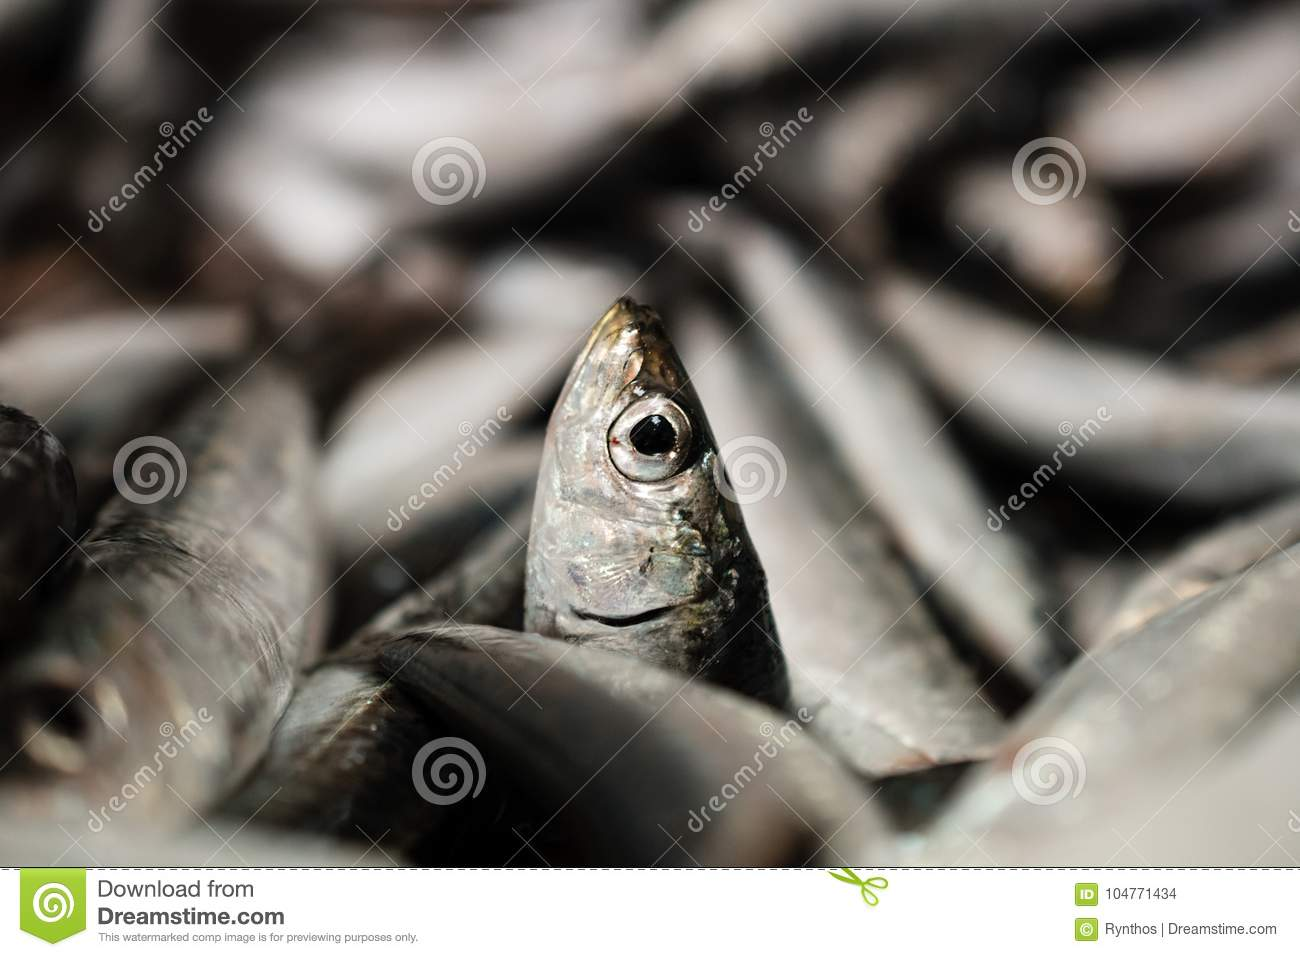 Close-Up Of One European Sardine Or Sardina Pilchardus In A Larger Pile Of Freshly Caught Sardines Lined Up For Sale In Greek Fish